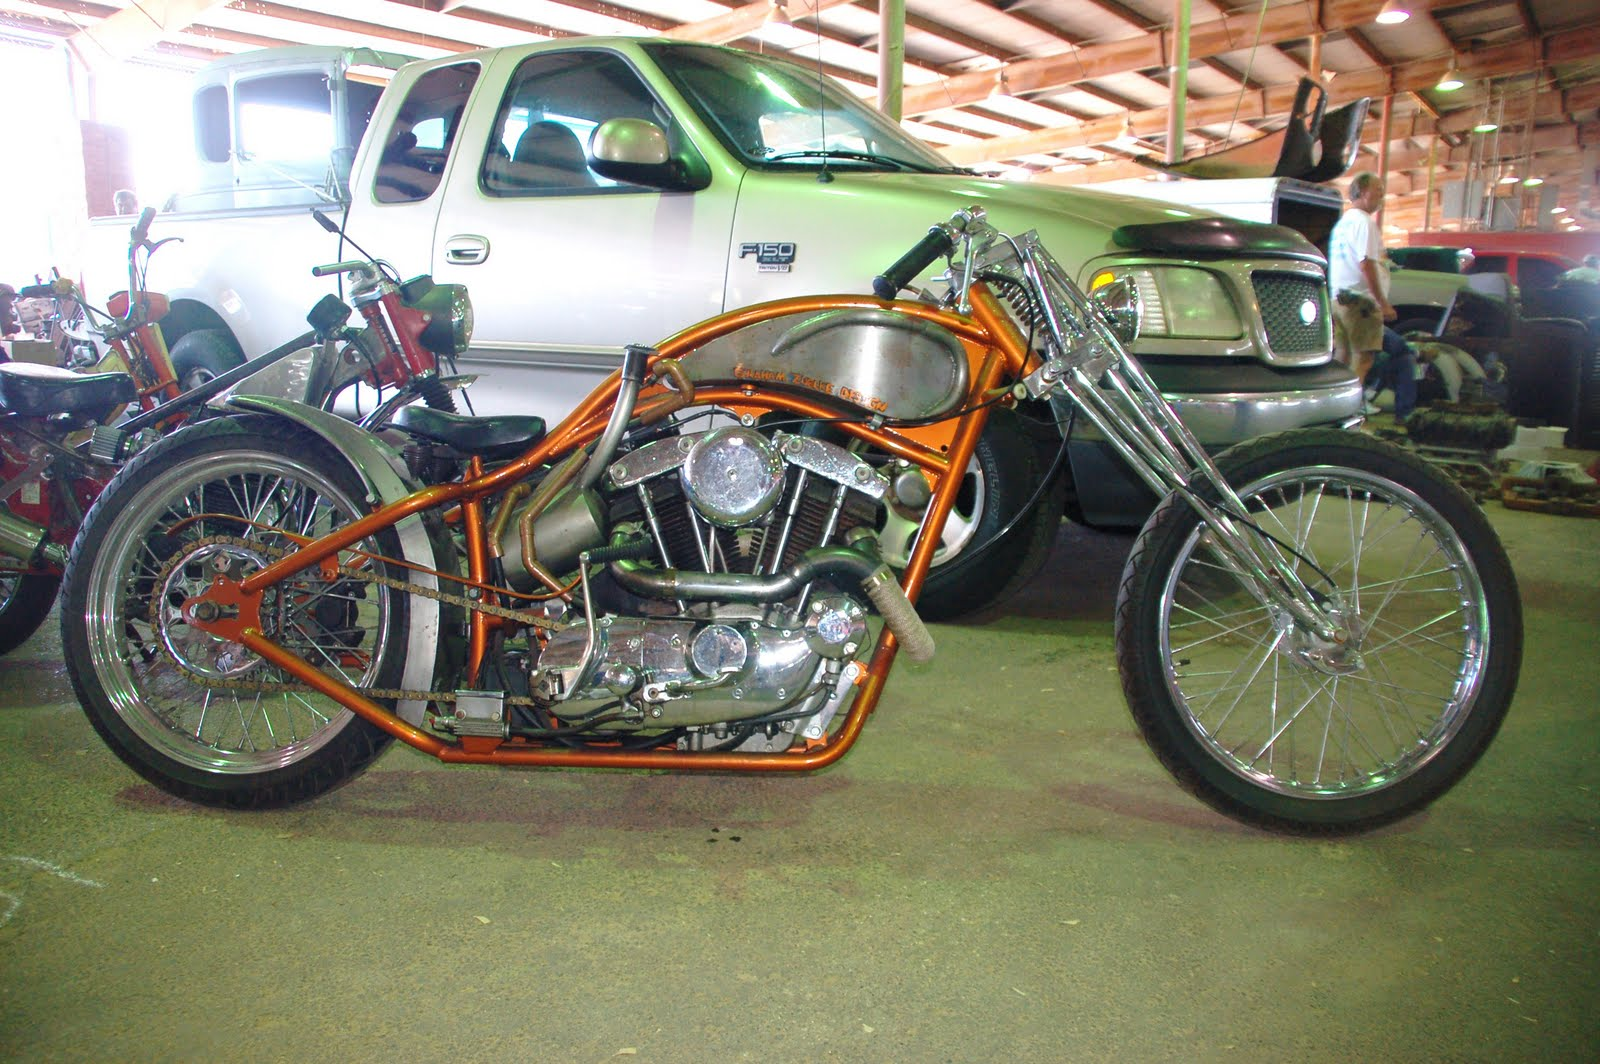 Hank Young Choppers of The Hank Young Chopper